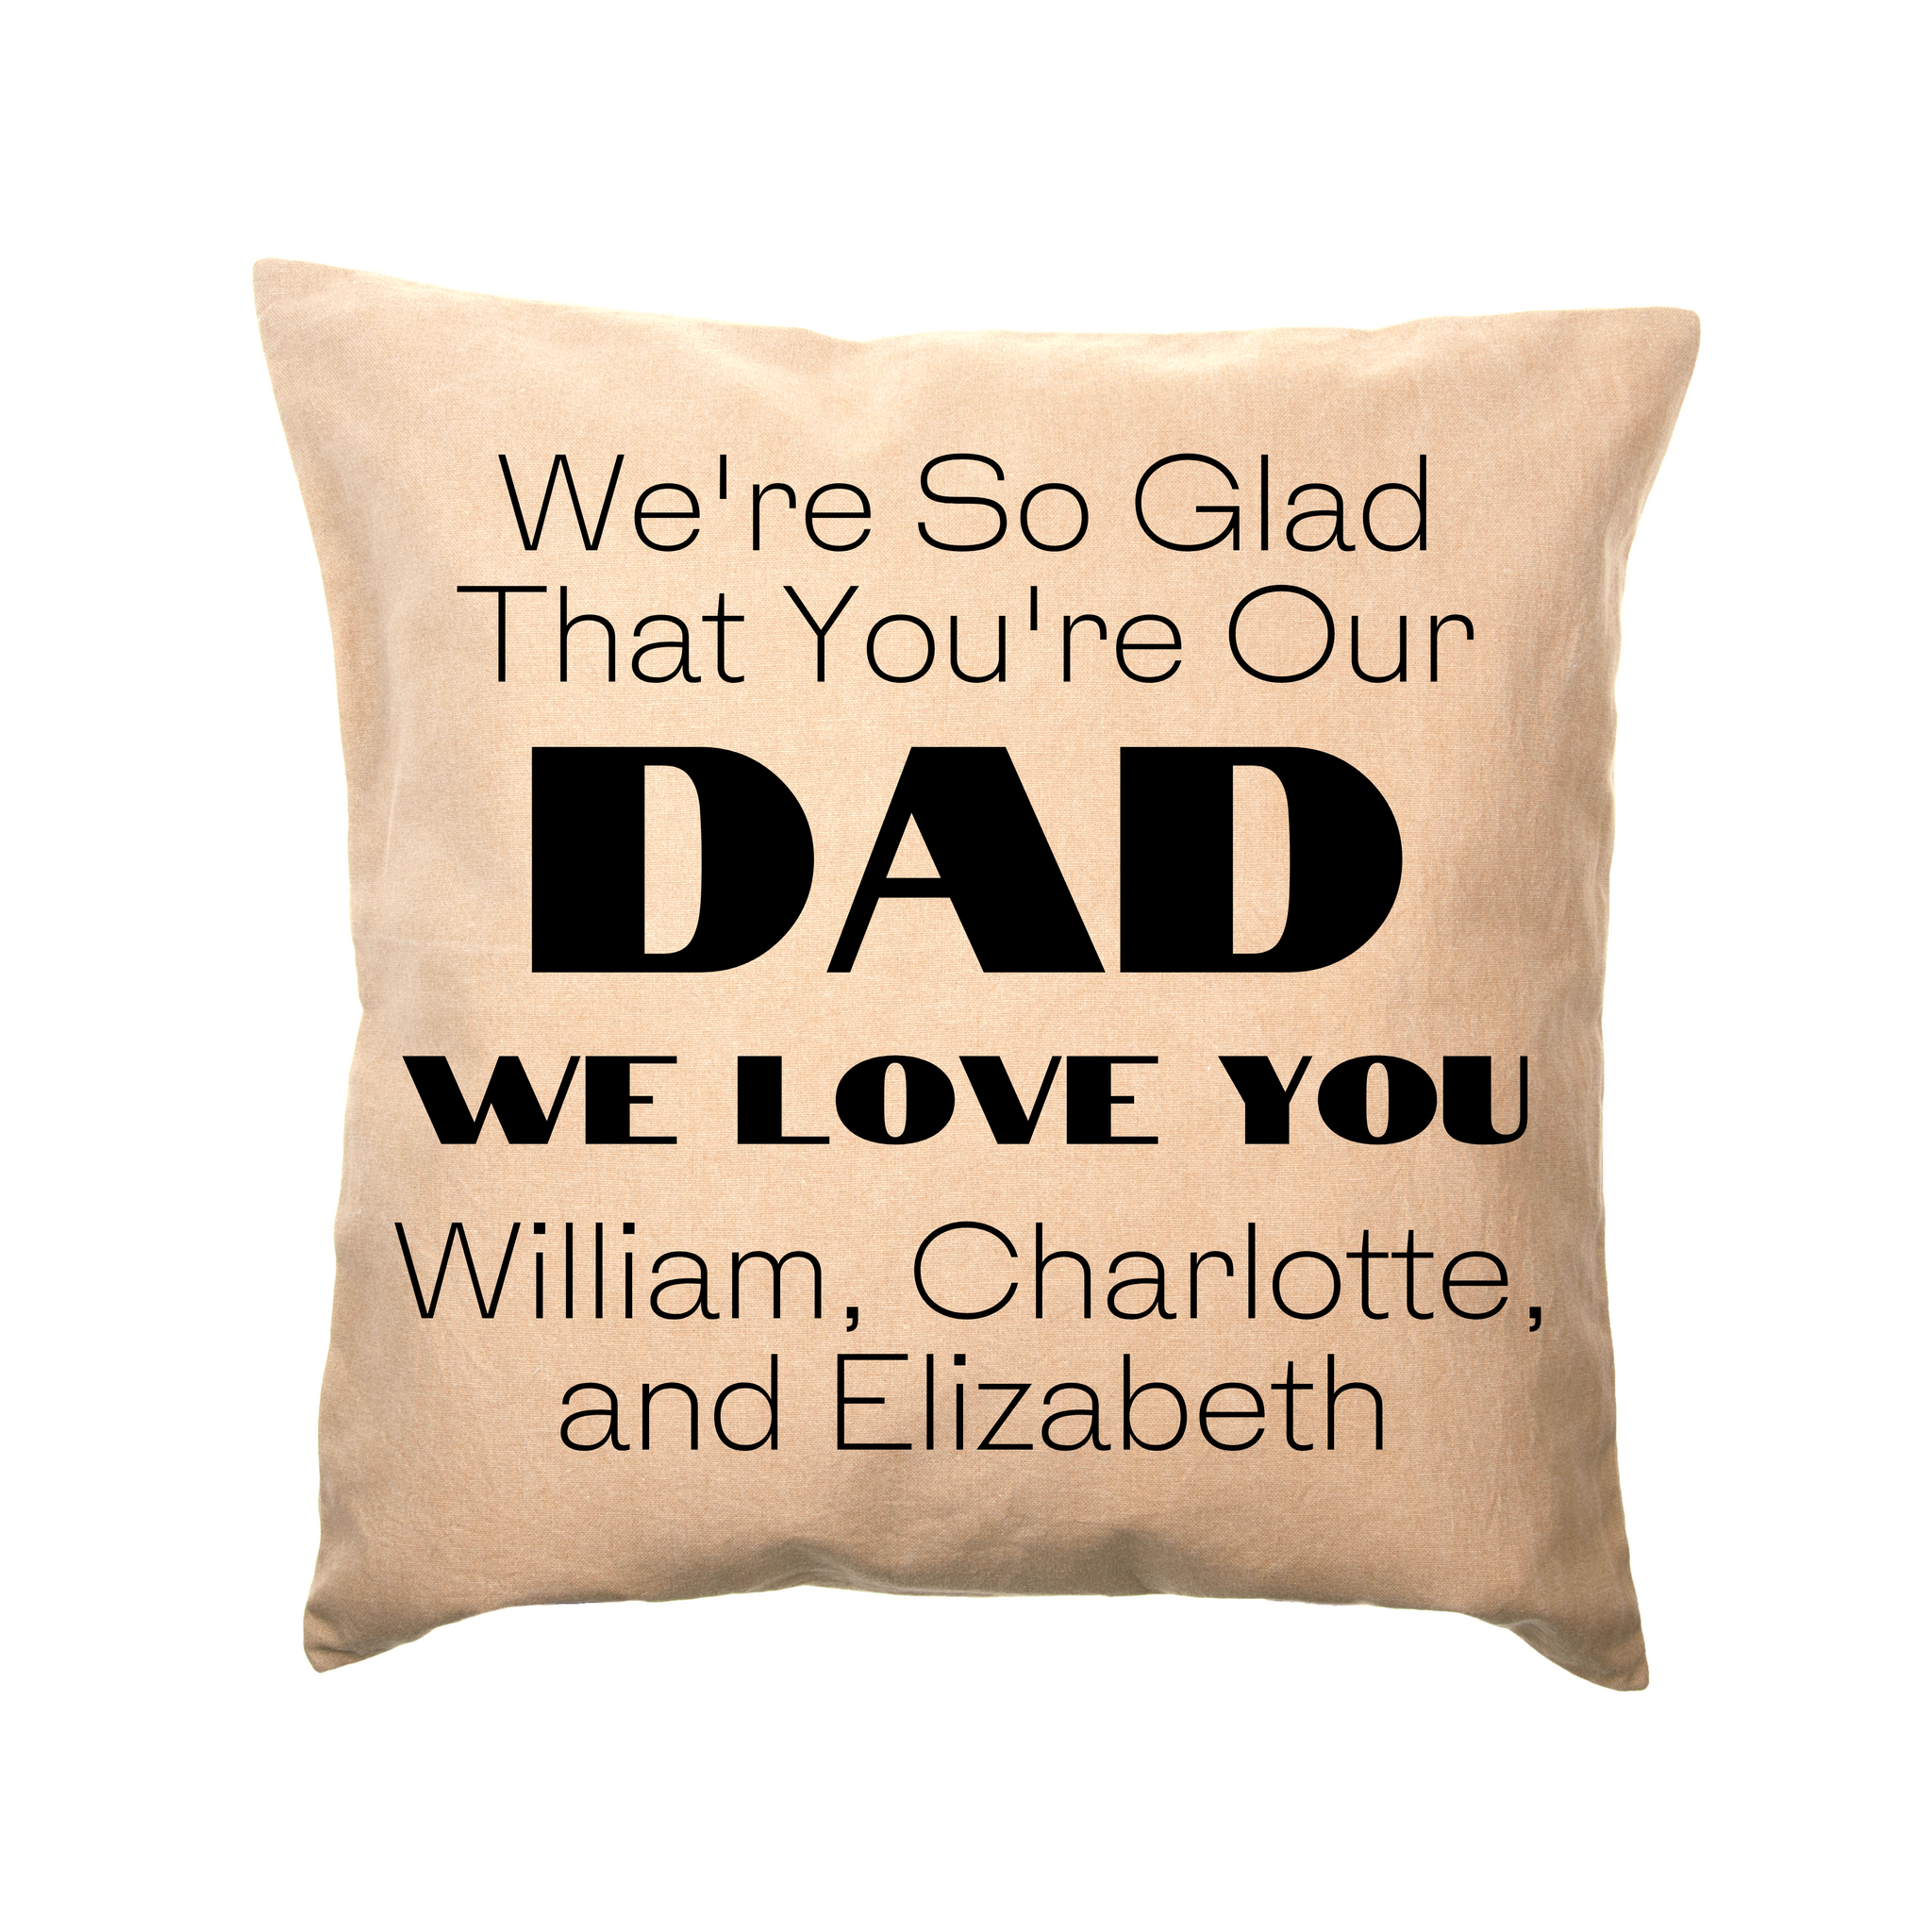 Personalized Father's Day Pillow Covers